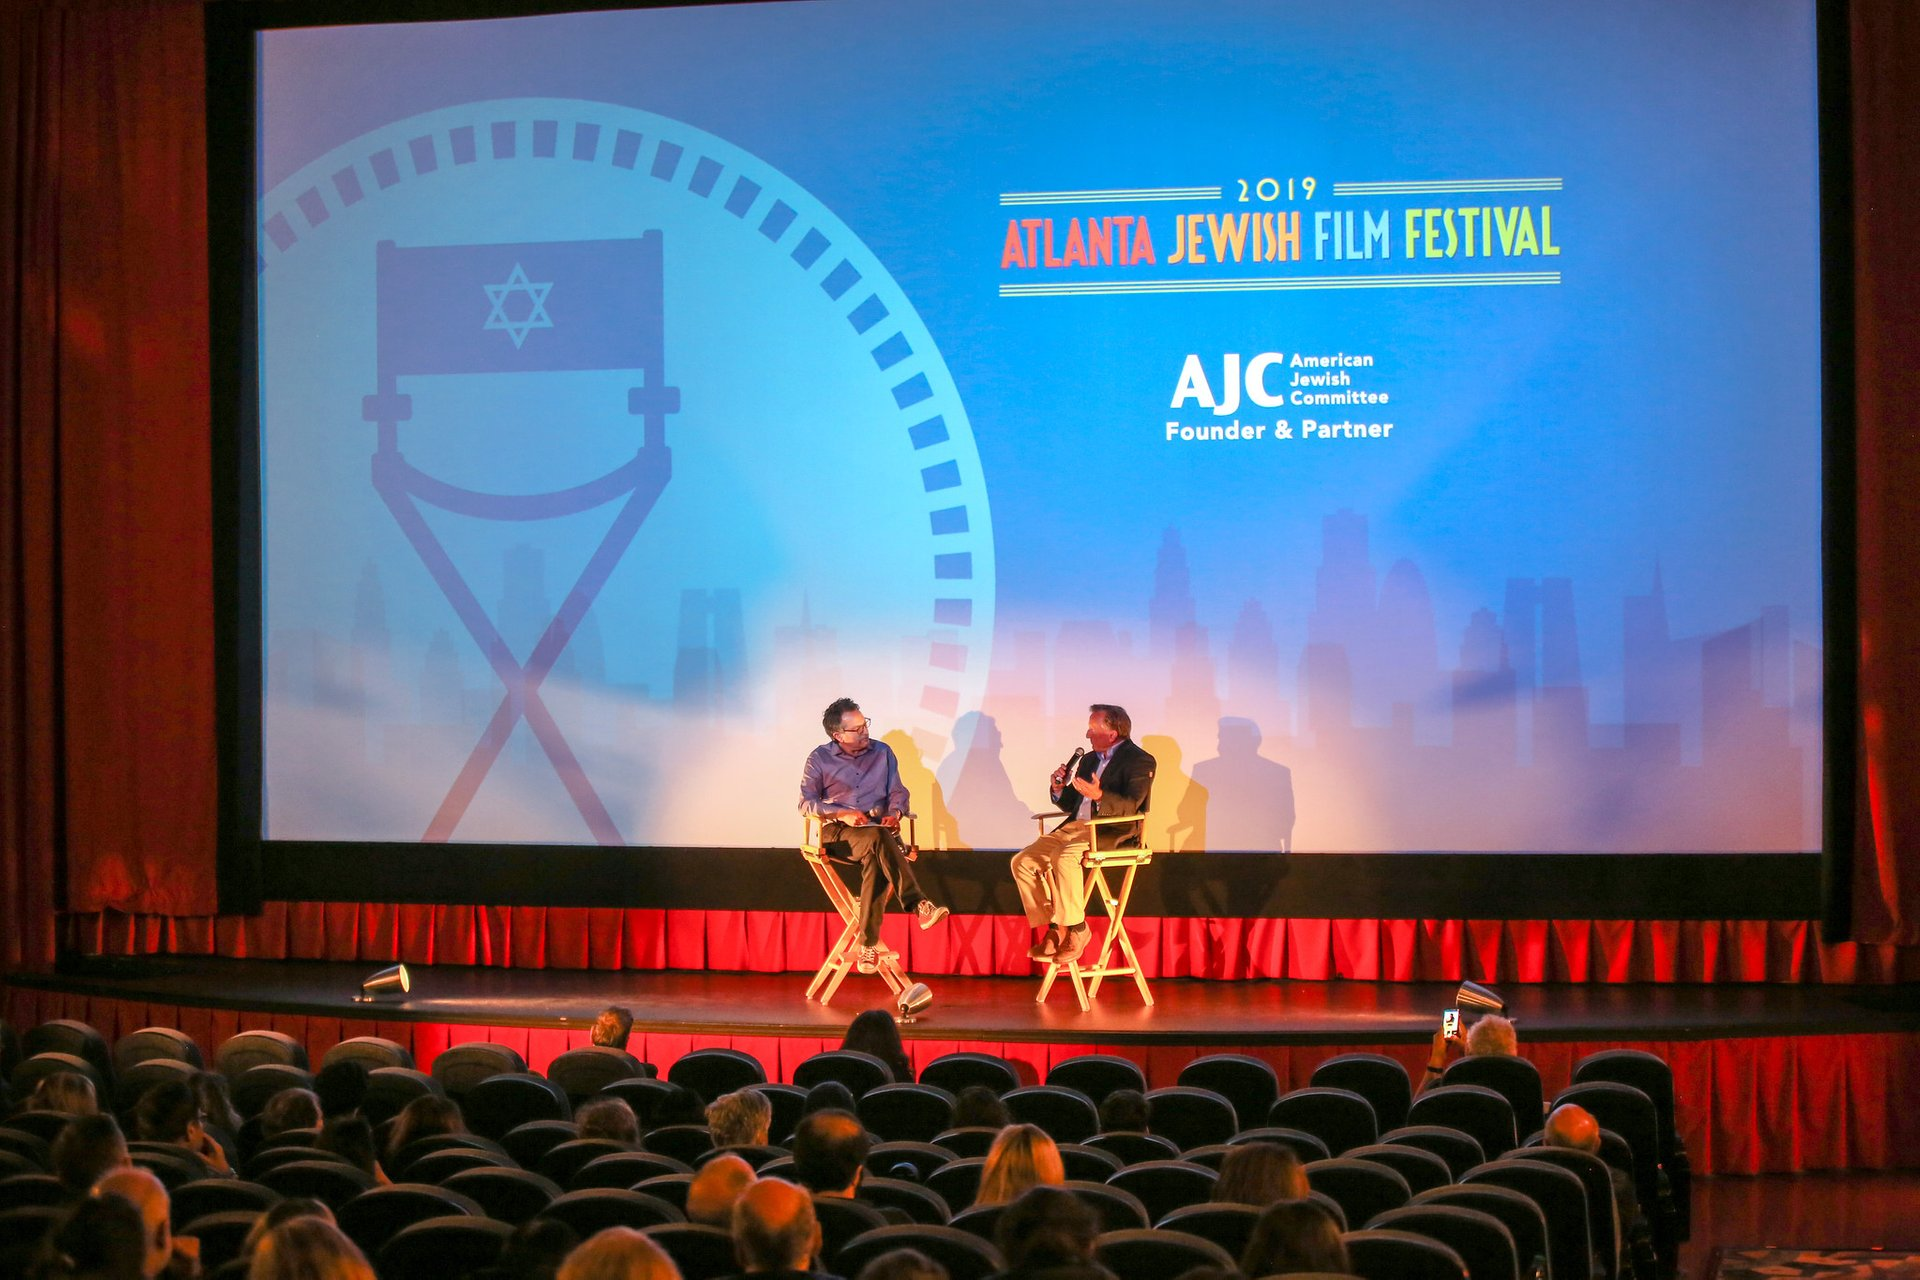 Atlanta Jewish Film Festival in Atlanta 2020 - Best Time